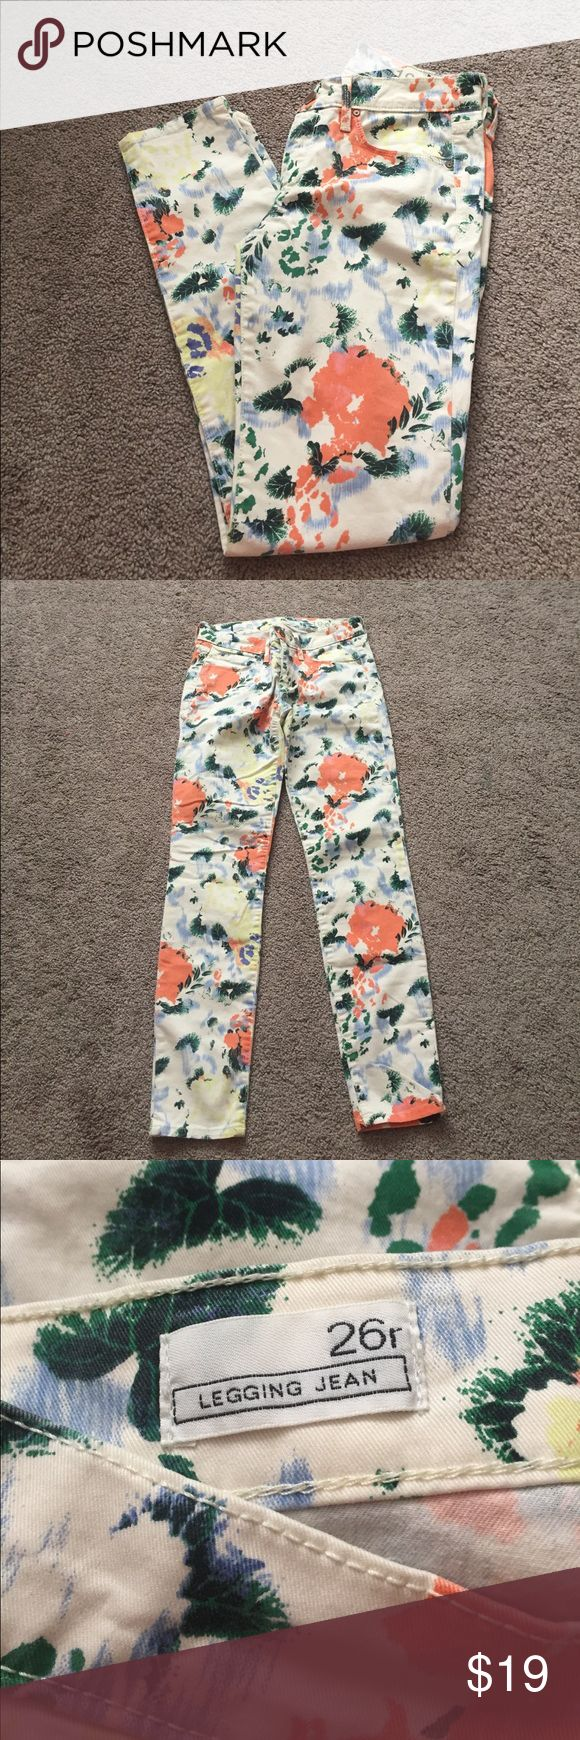 Gap patterned pants! LIKE NEW adorable and fun floral print pants from GAP! No flaws, worn once years ago and were in the bottom of my drawer since. Perfect pop of color for a statement outfit, perfect for the office or running errands. Size 26 🌸 GAP Pants Skinny